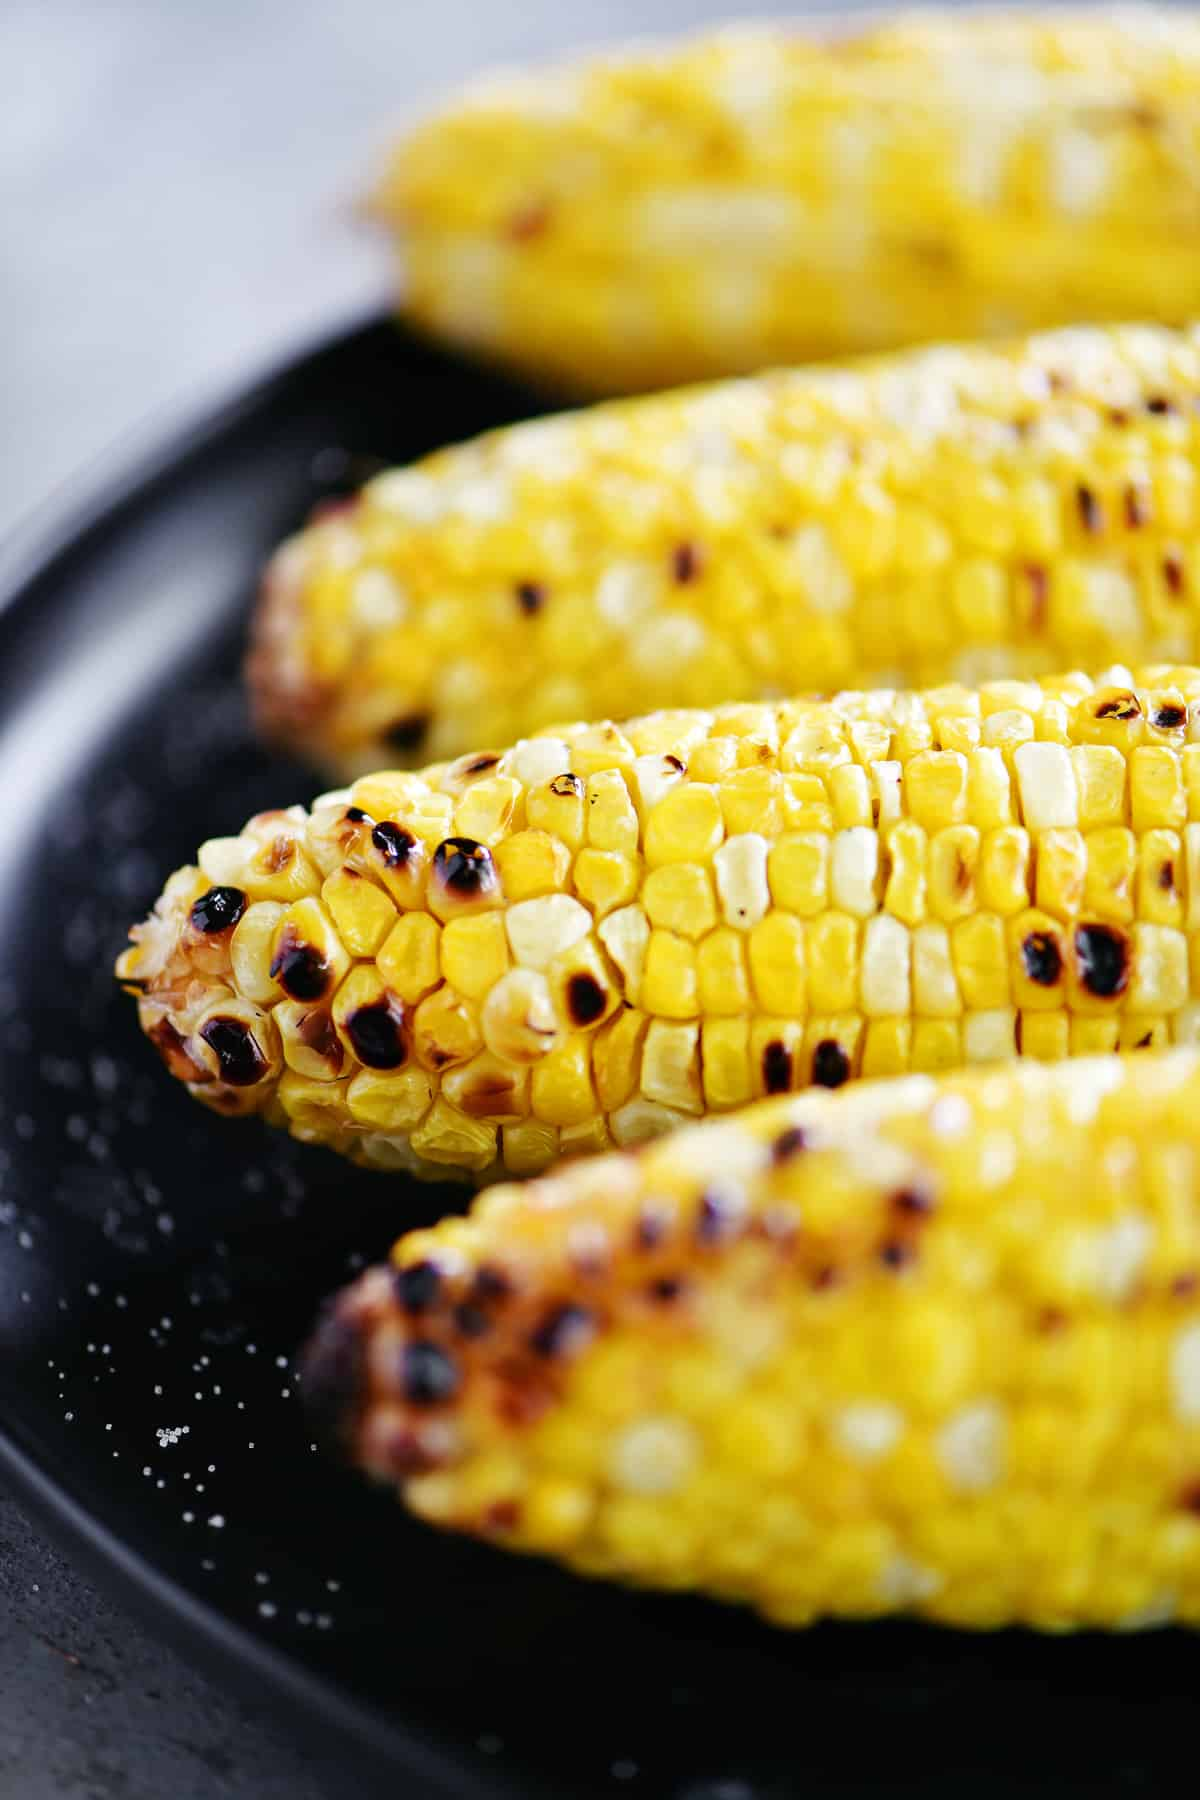 platter of grilled corn on the cob